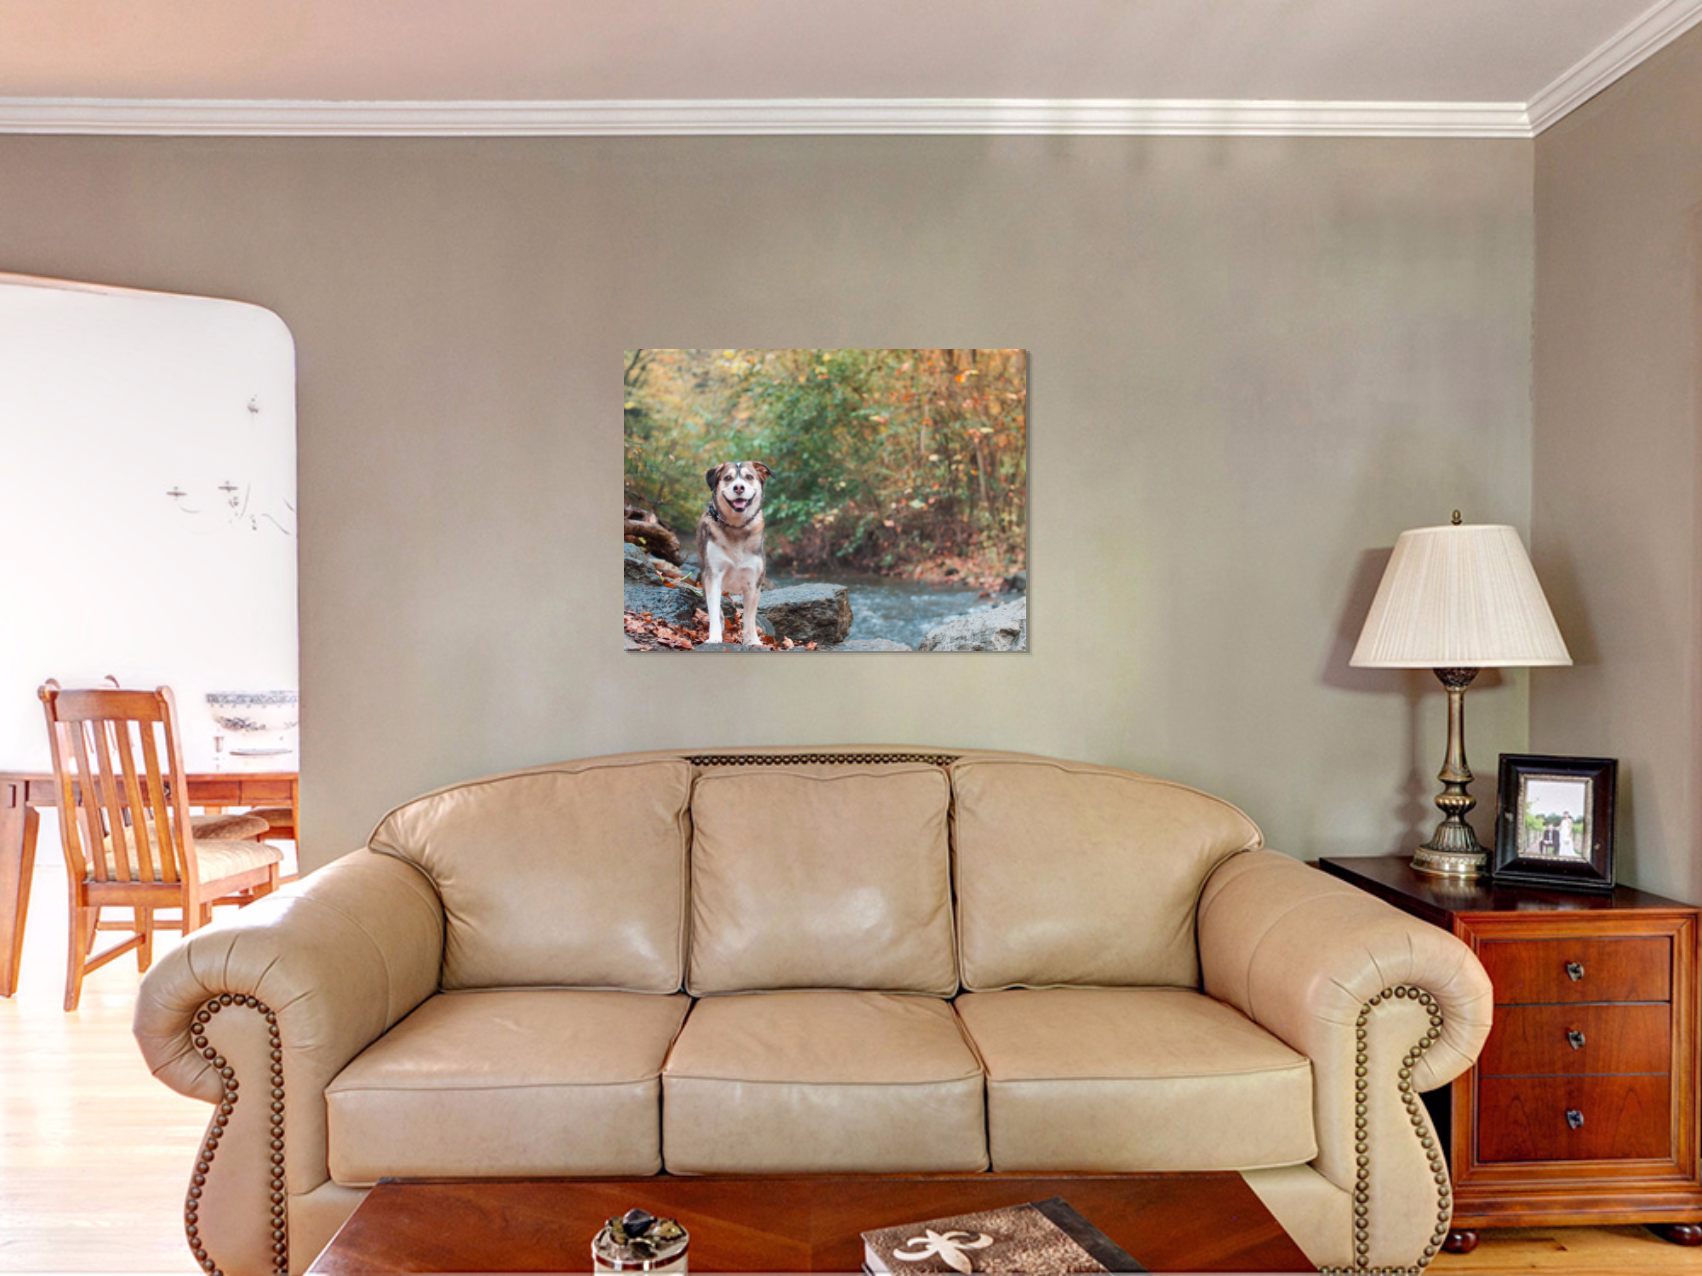 30x40 canvas in living room